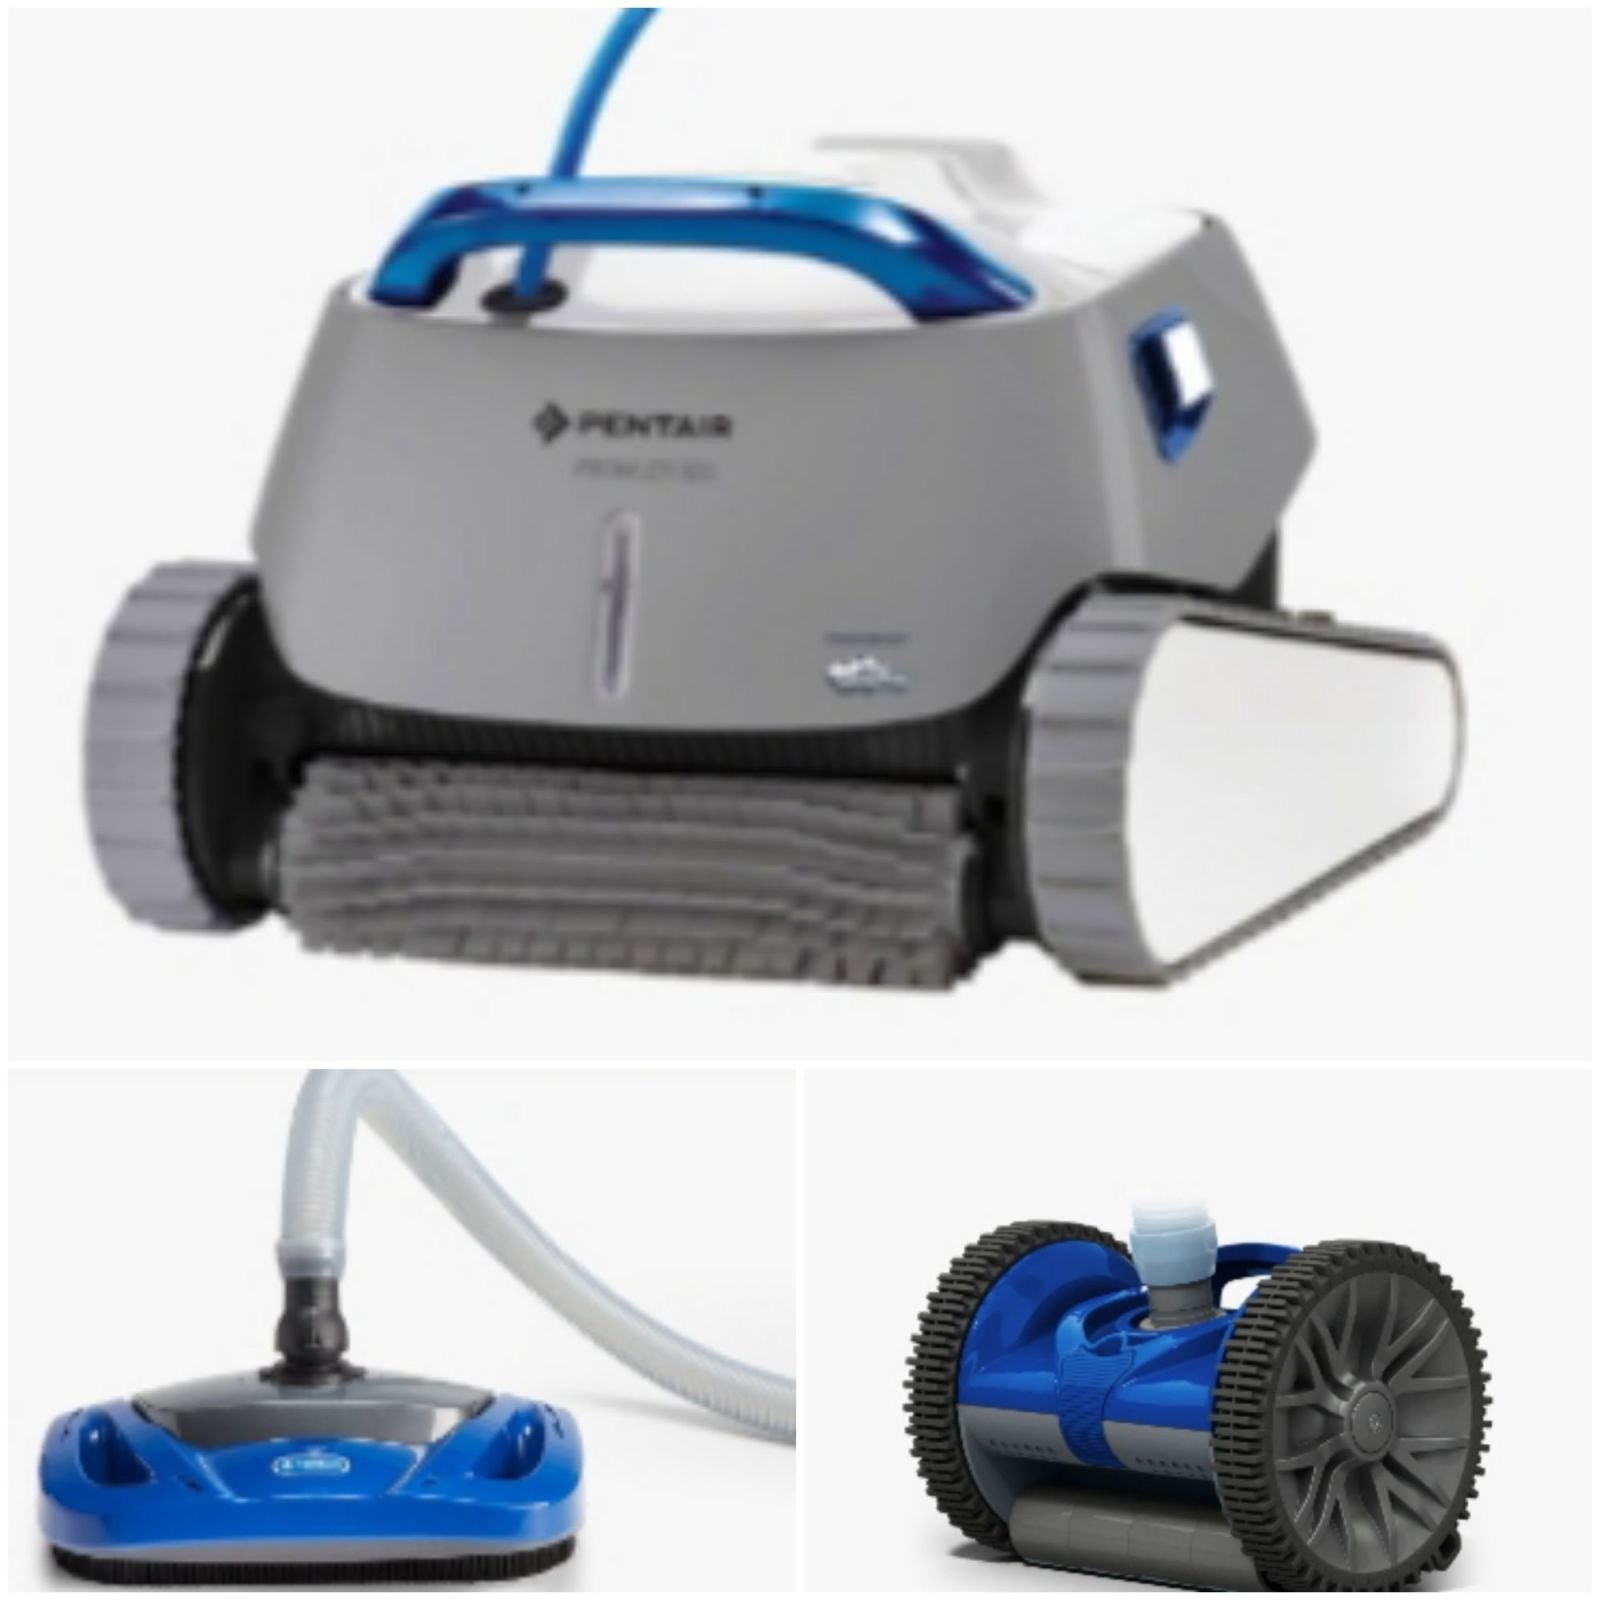 Pentair Pool Cleaners - Call us at 804-861-1191